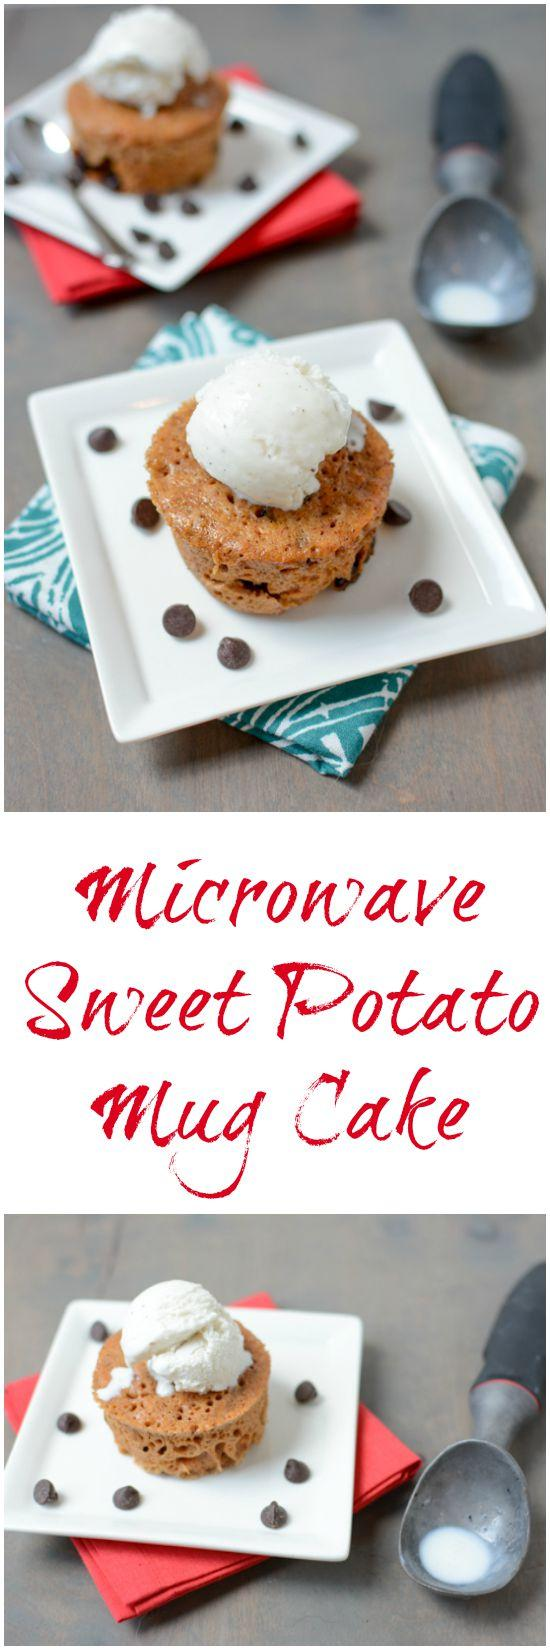 Made with simple ingredients, this Microwave Sweet Potato Mug Cake can be made quickly when the dessert craving hits!